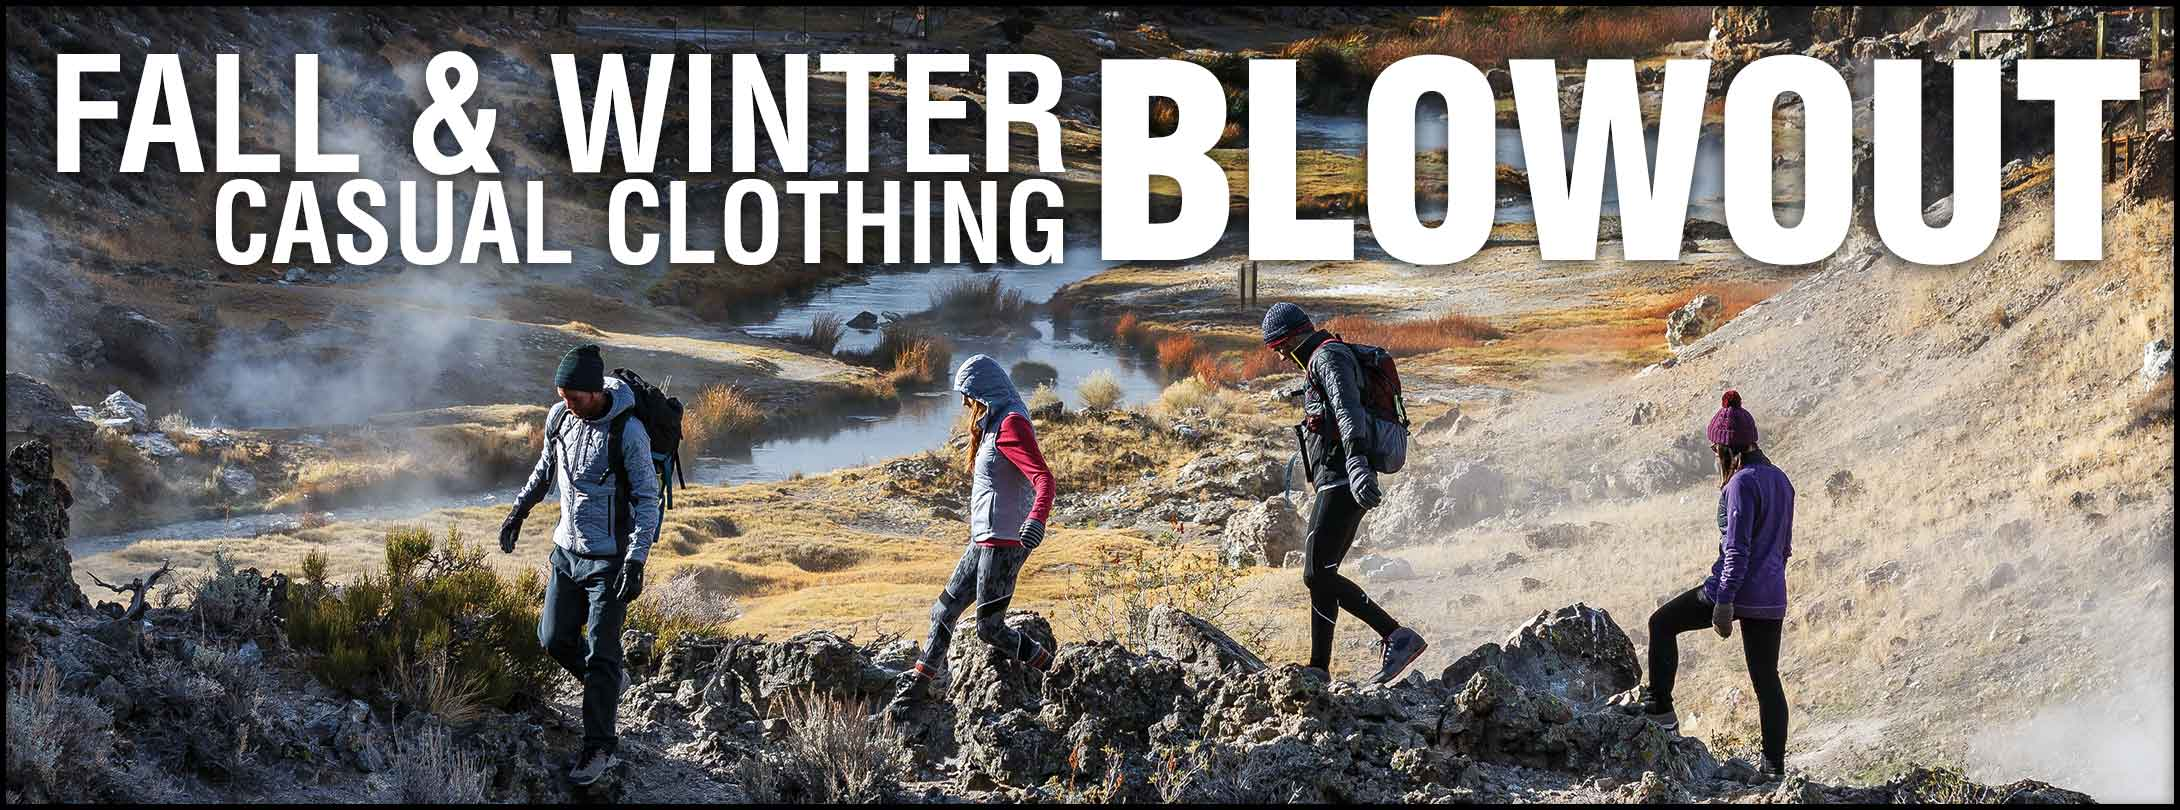 Fall & Winter Casual Clothing Sale!